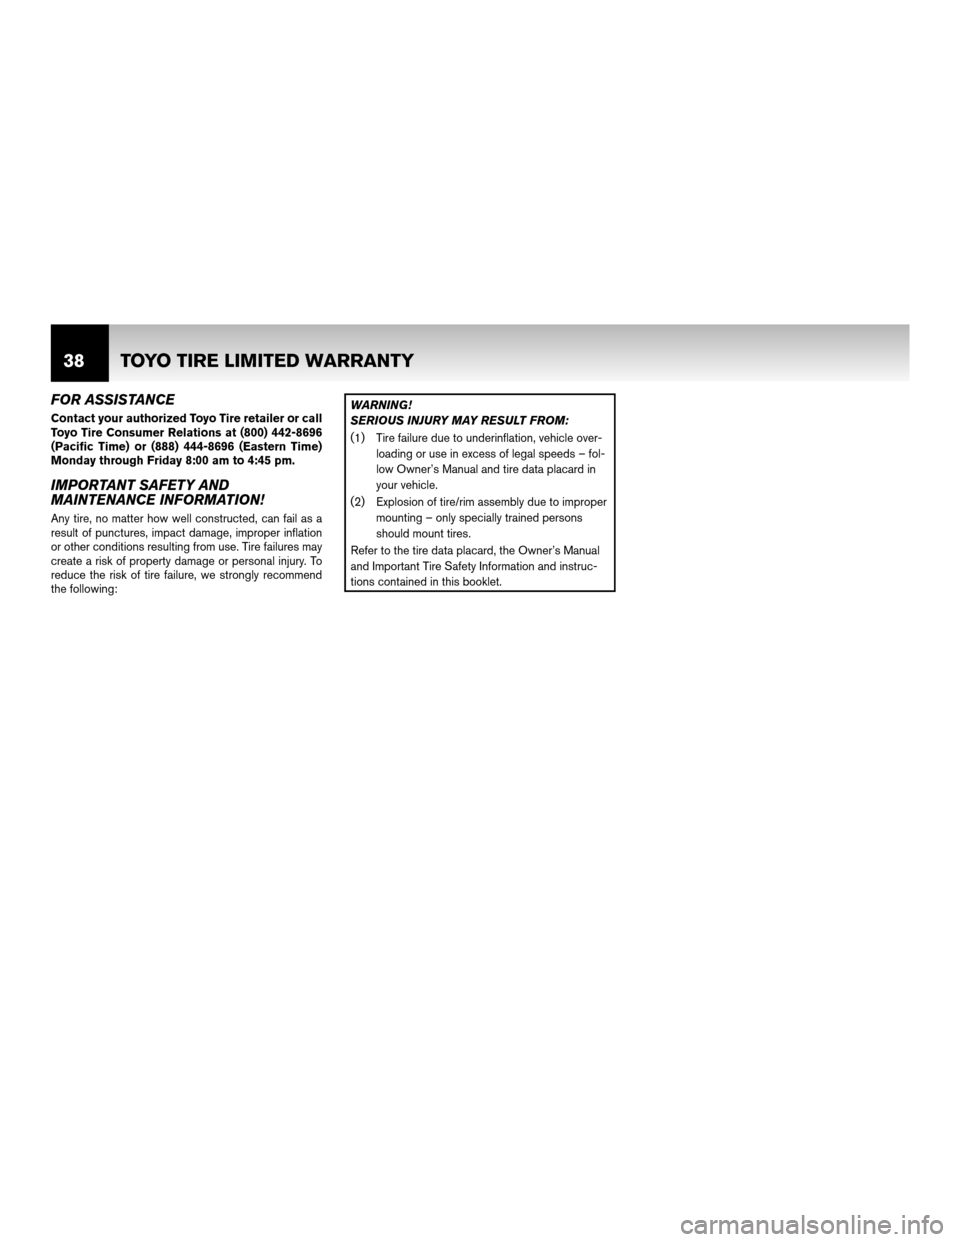 NISSAN ROGUE 2011 1.G Warranty Booklet, Page 41